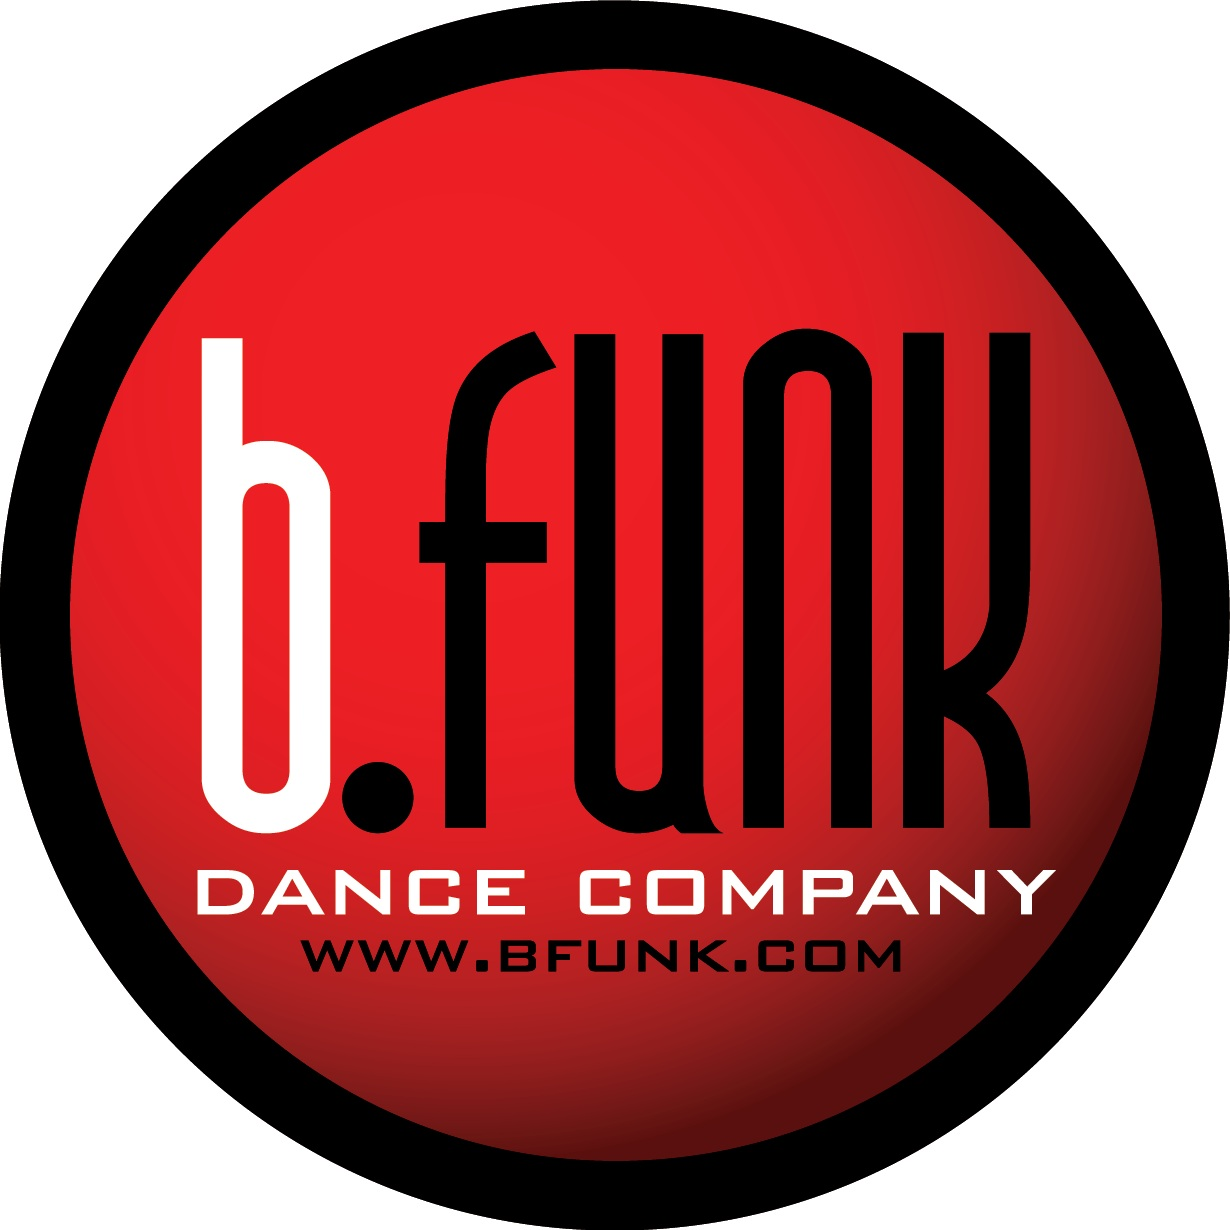 b funk dance company. Black Bedroom Furniture Sets. Home Design Ideas